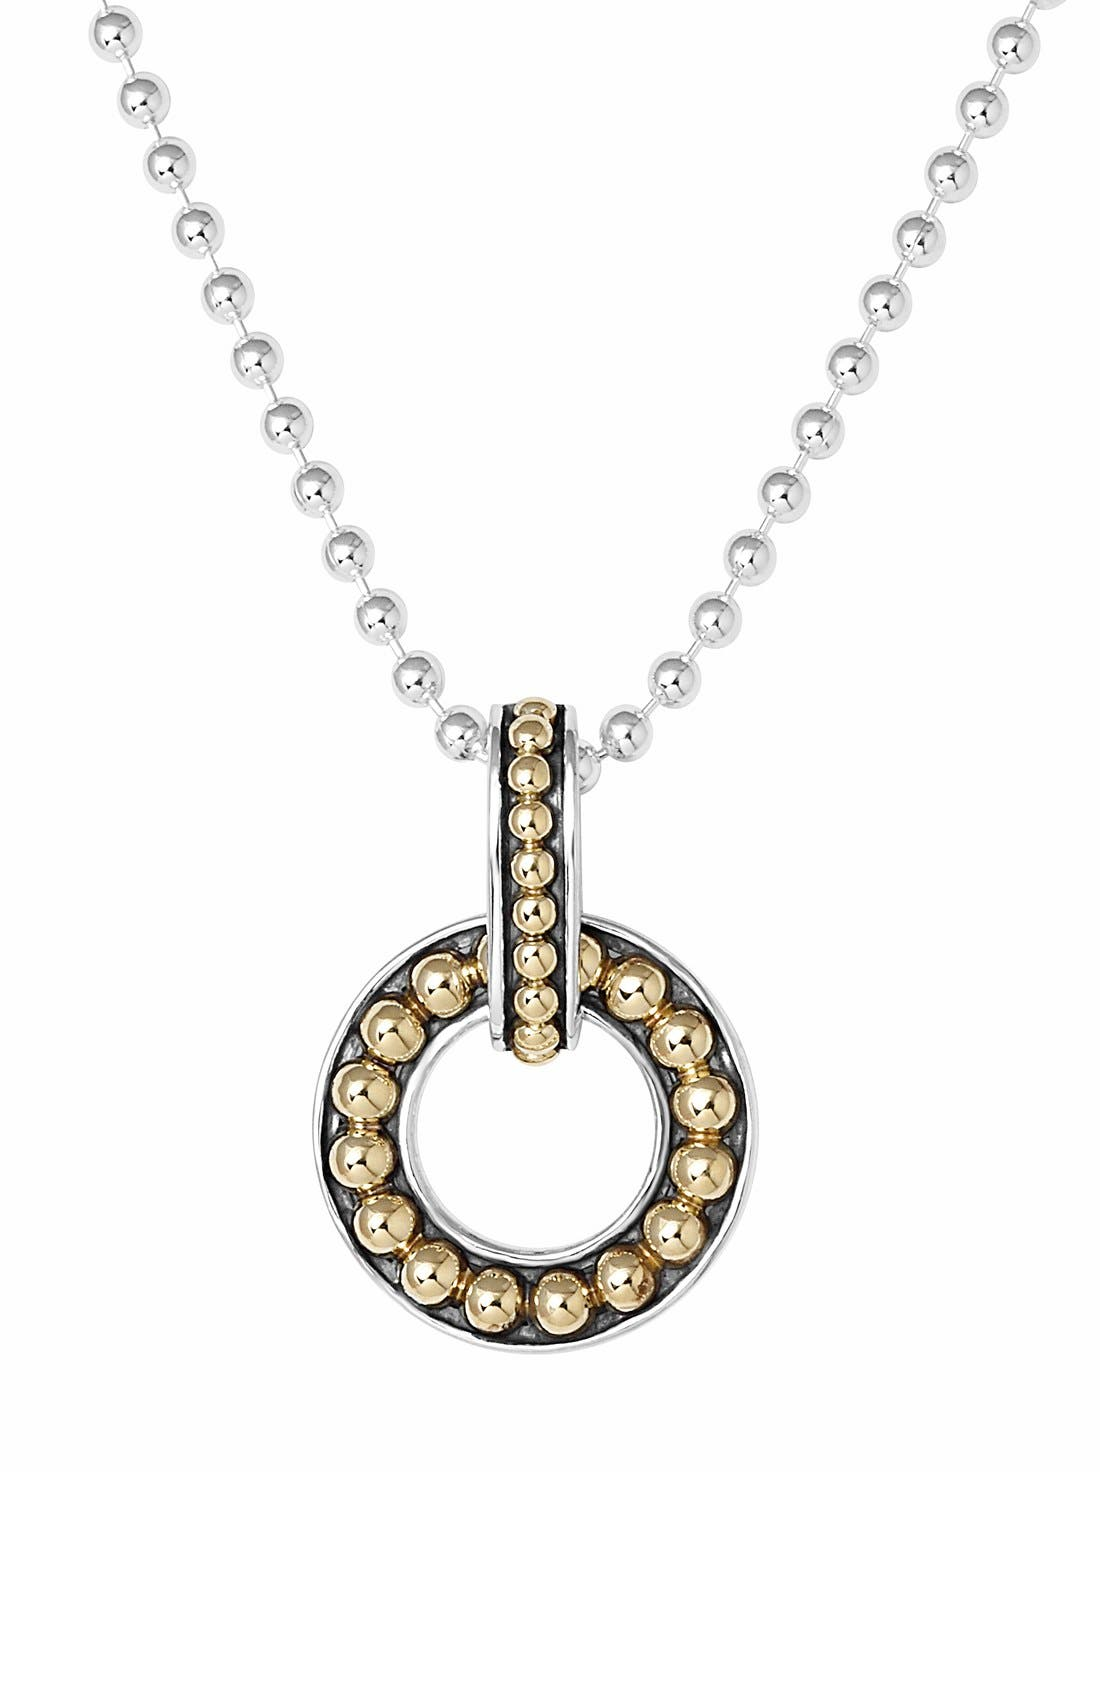 LAGOS 'Enso' Pendant Necklace